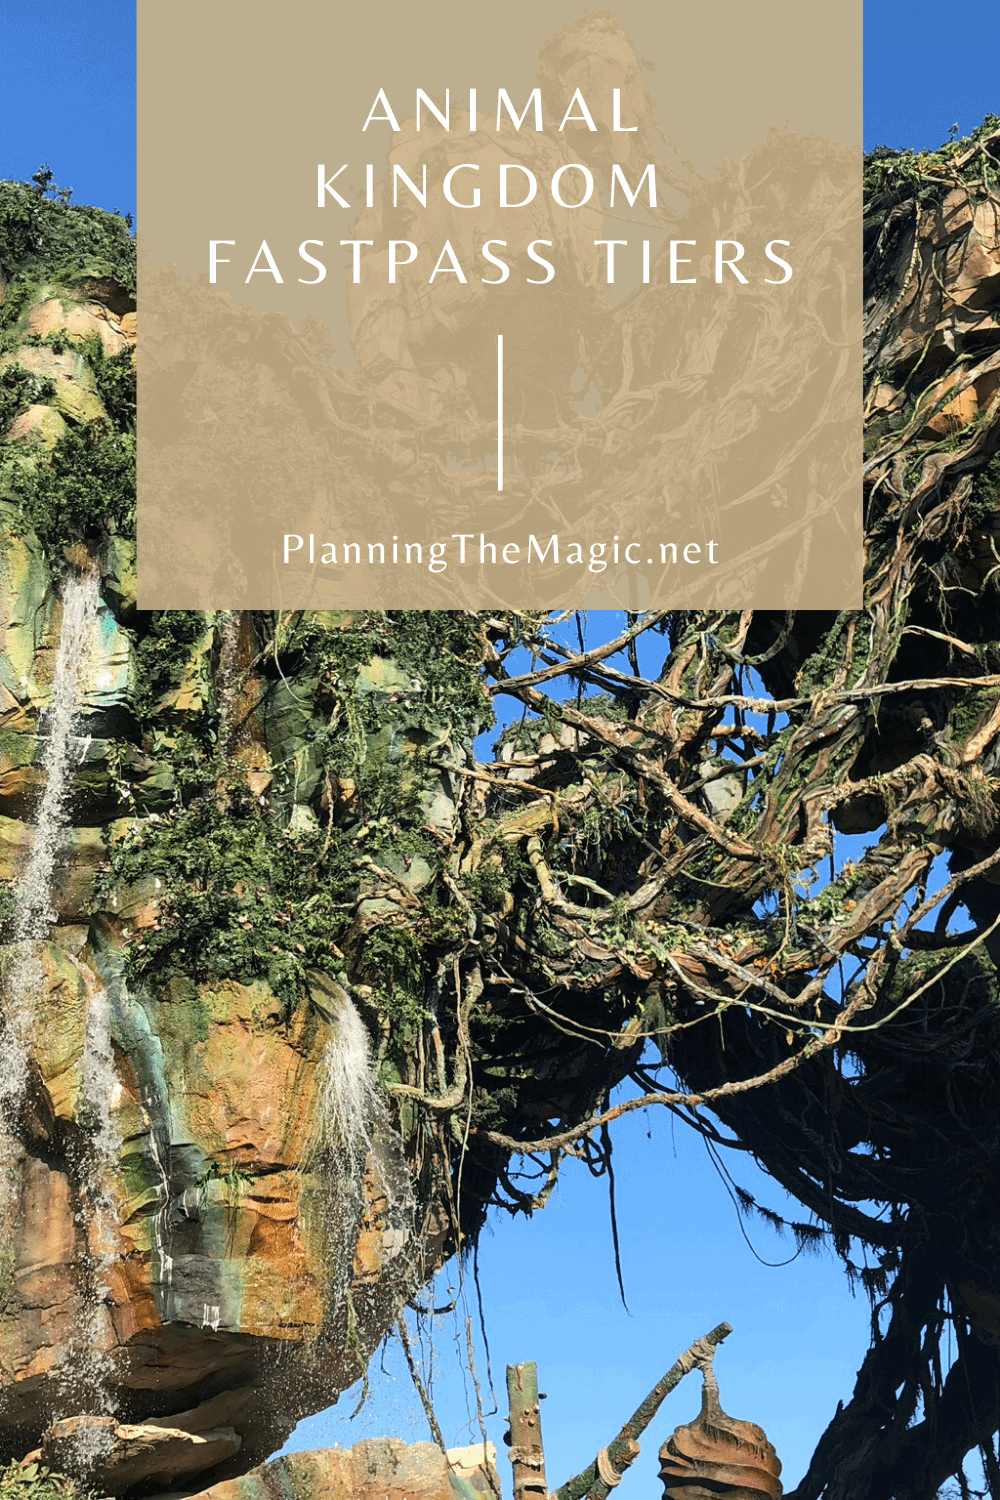 animal kingdom fastpass tiers